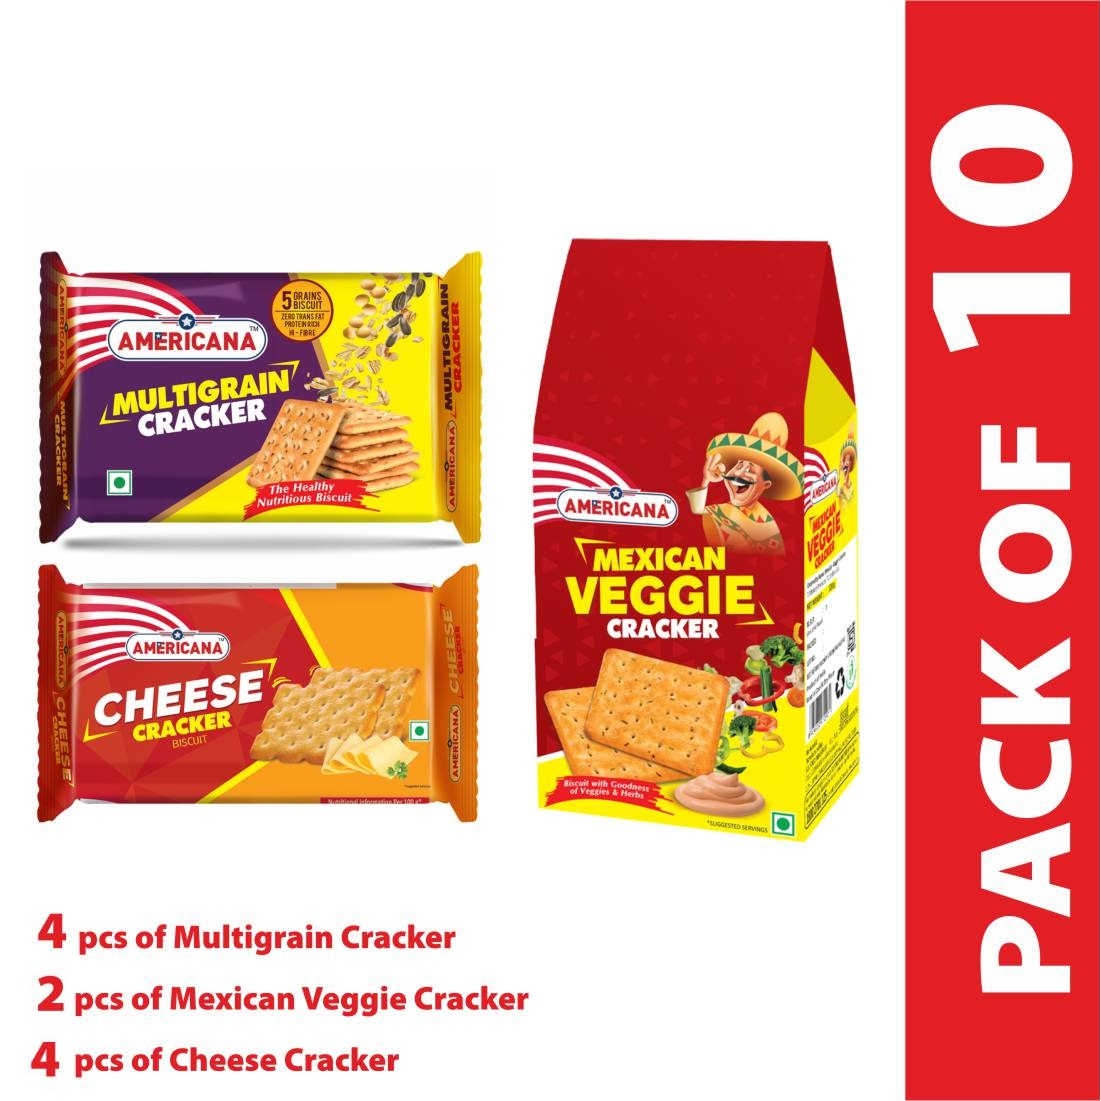 Americana mix crispy crackers (2 pack of Mexican Veggie Cracker 120g and 4 pack each of  Multigrain Cracker 66g and Cheese Cracker 70g)